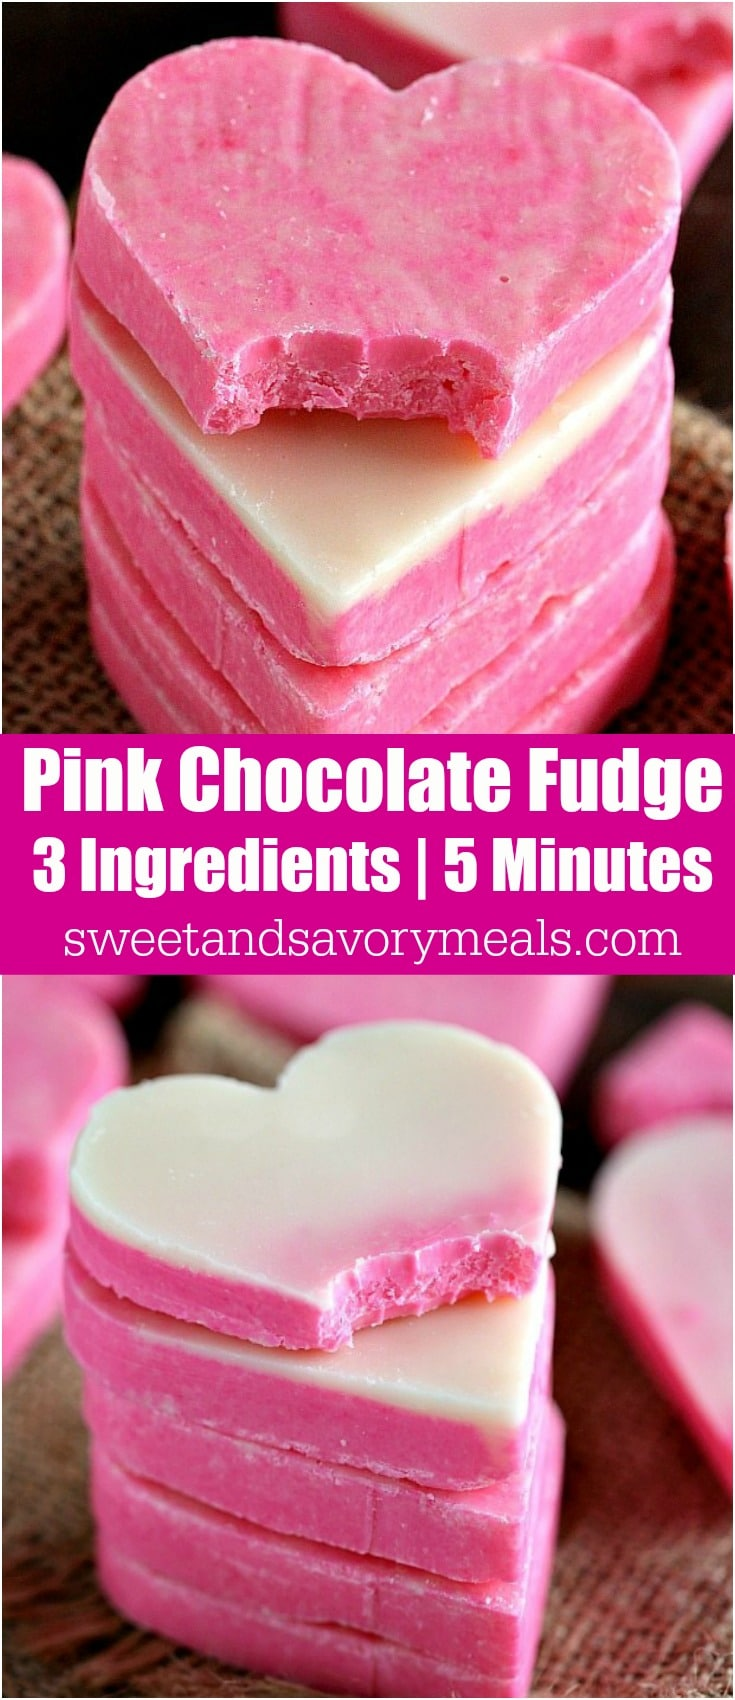 No Bake Pink White Chocolate Fudge is incredibly easy to make and very festive. 3 Ingredients, 5 minutes to get a creamy and irresistible fudge.